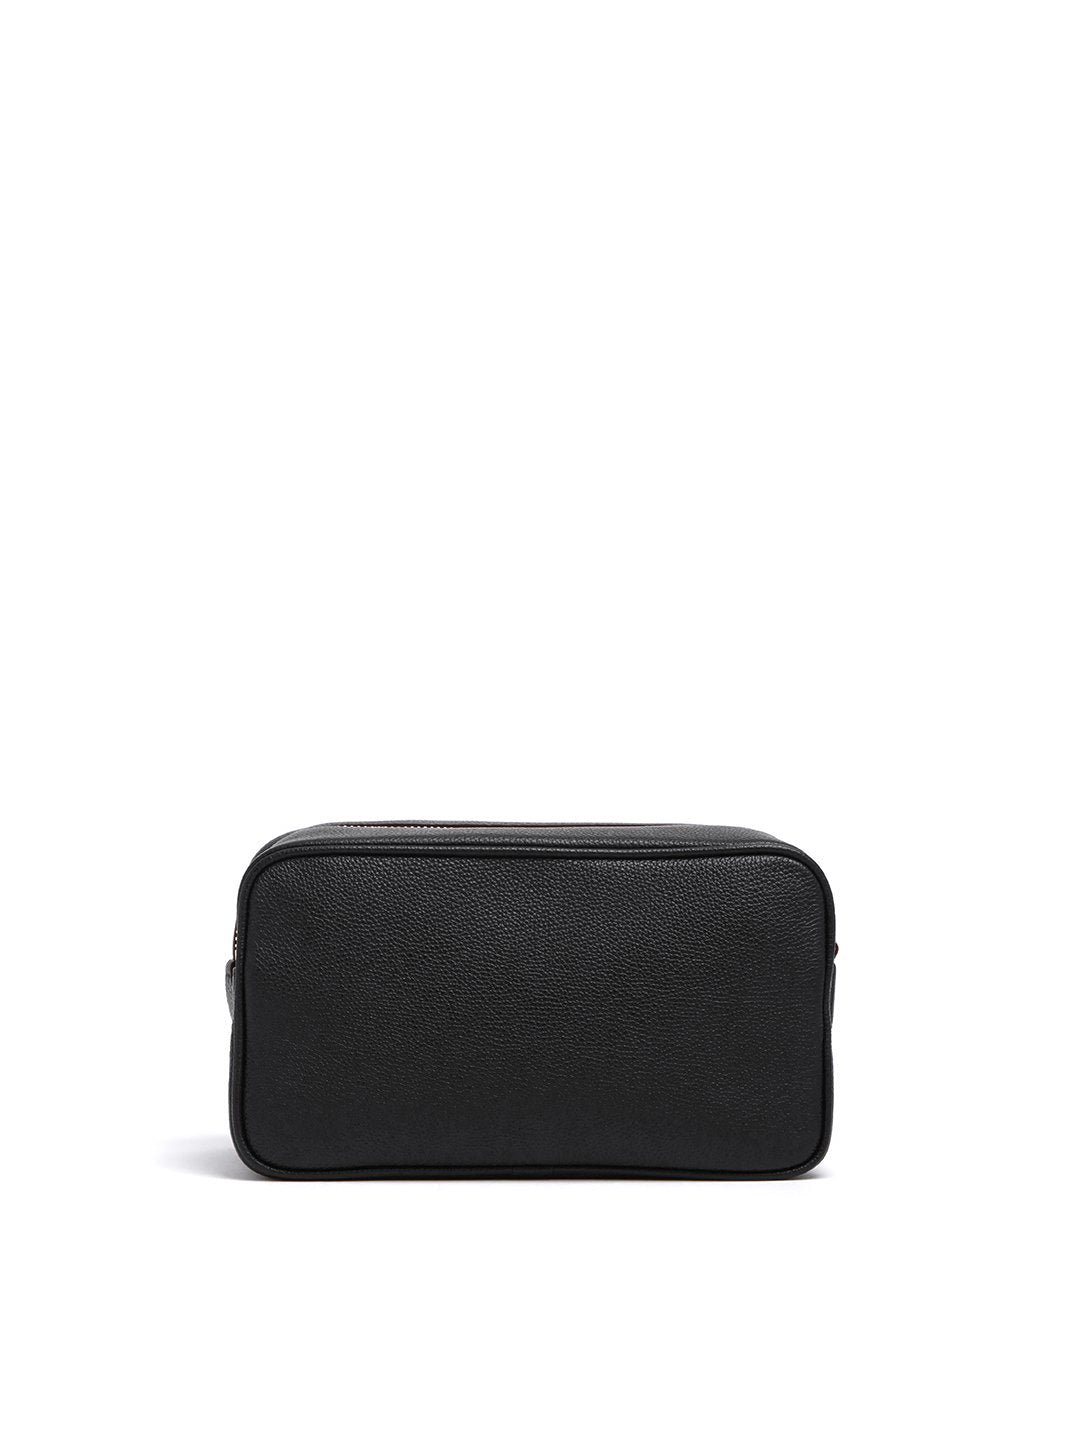 Mark Cross Leather Wash Bag Tumbled Grain Black Back